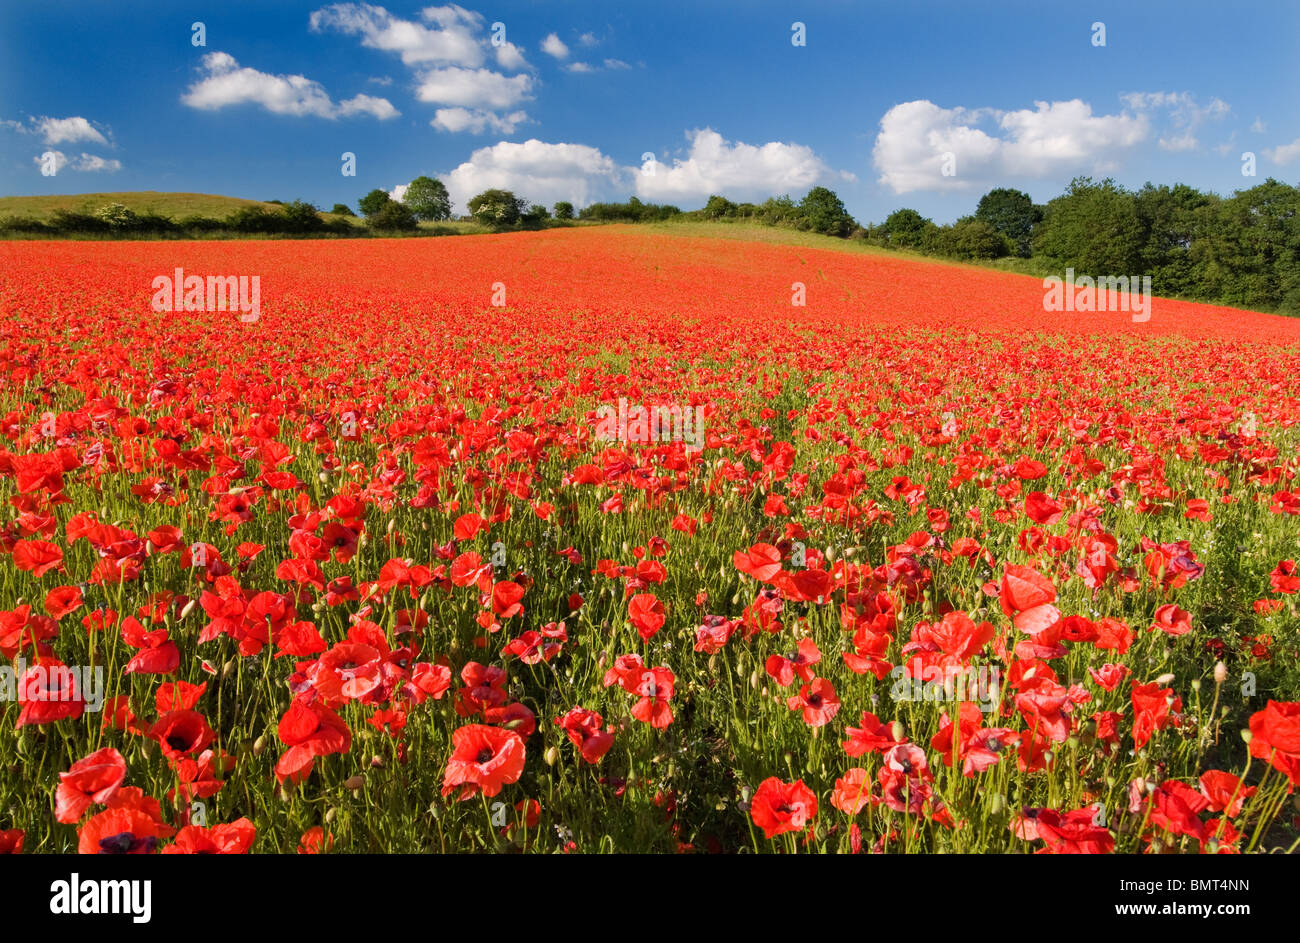 Spectacular display of Wild Poppies at a English Nature Reserve - Stock Image